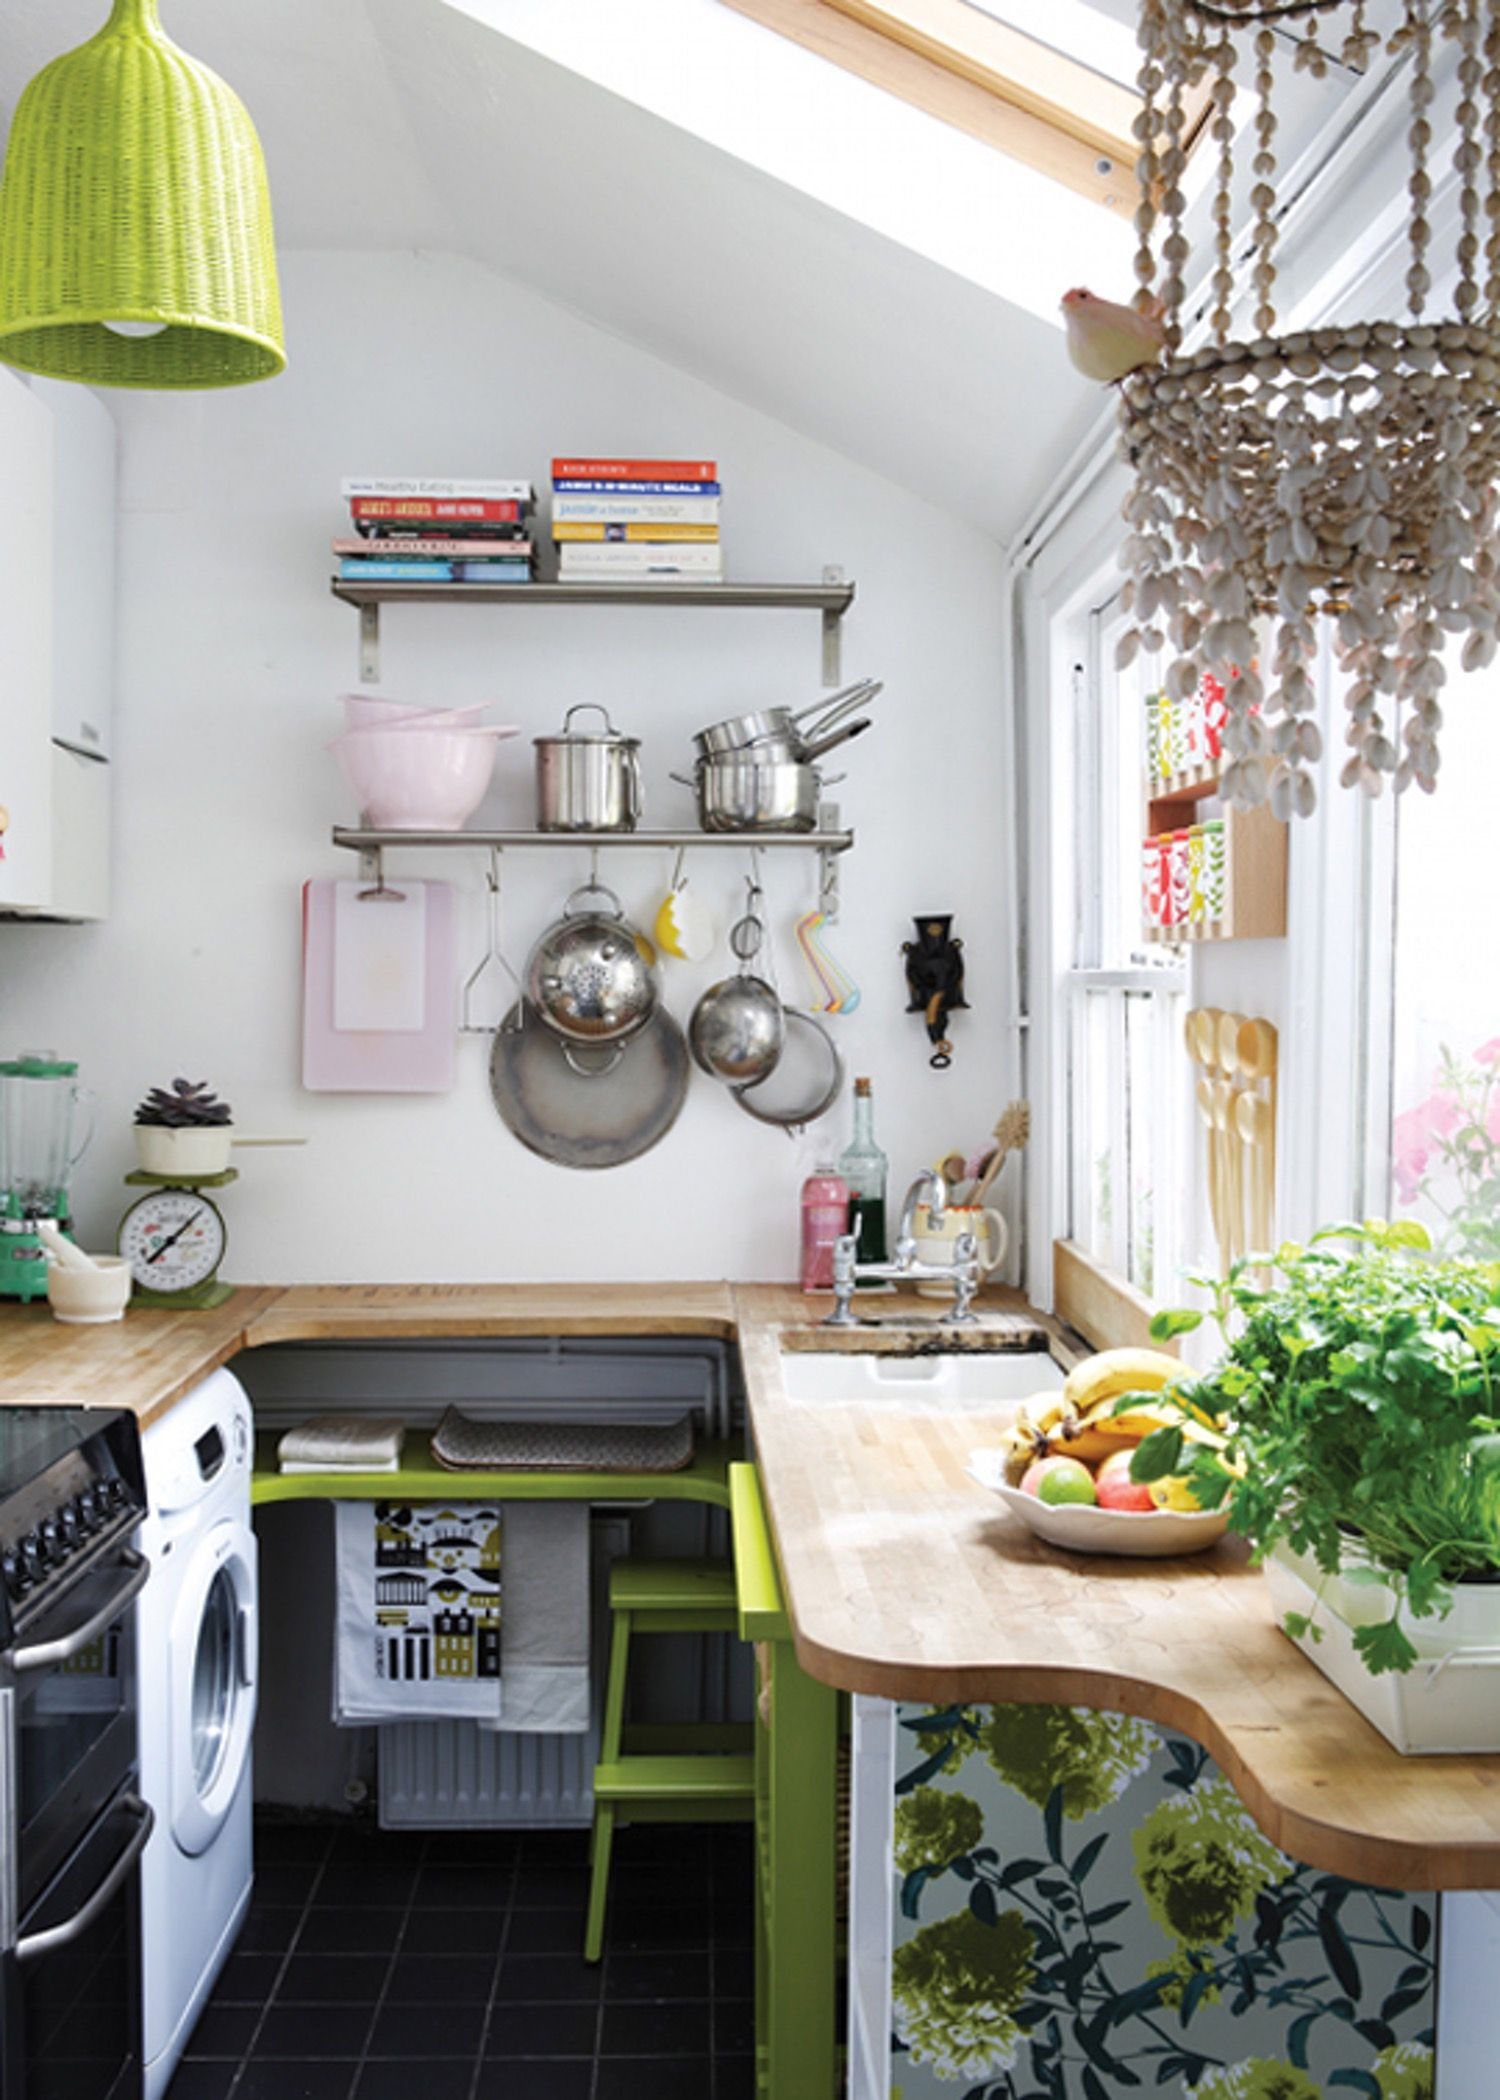 7 Kitchen Storage Spots You May Be Missing | Small space living ...